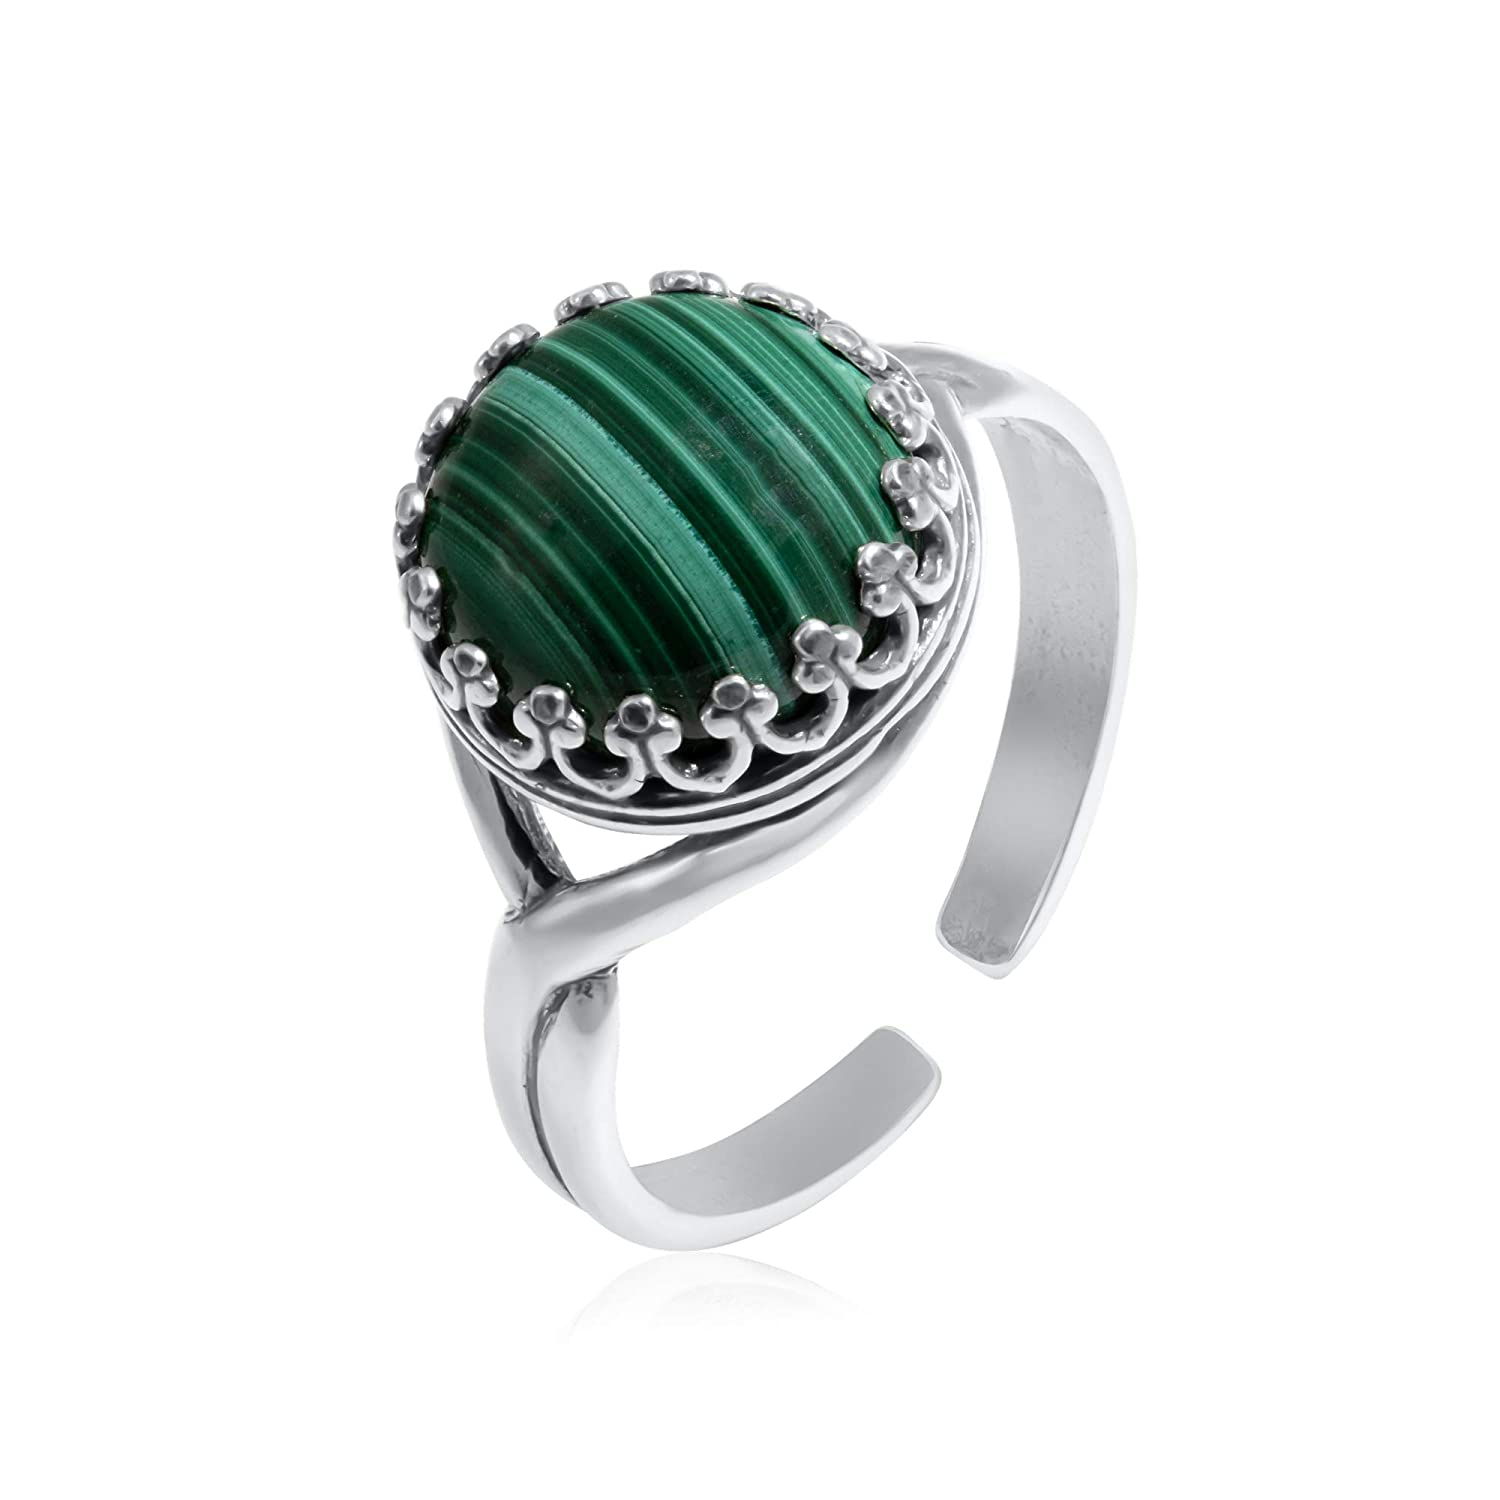 Solid Quality Malachite Oval Gemstone Ring For Father/'s Day Gift ar1499 925 Sterling Silver Ring Gemstone Hand Made Ring Size US 6.25